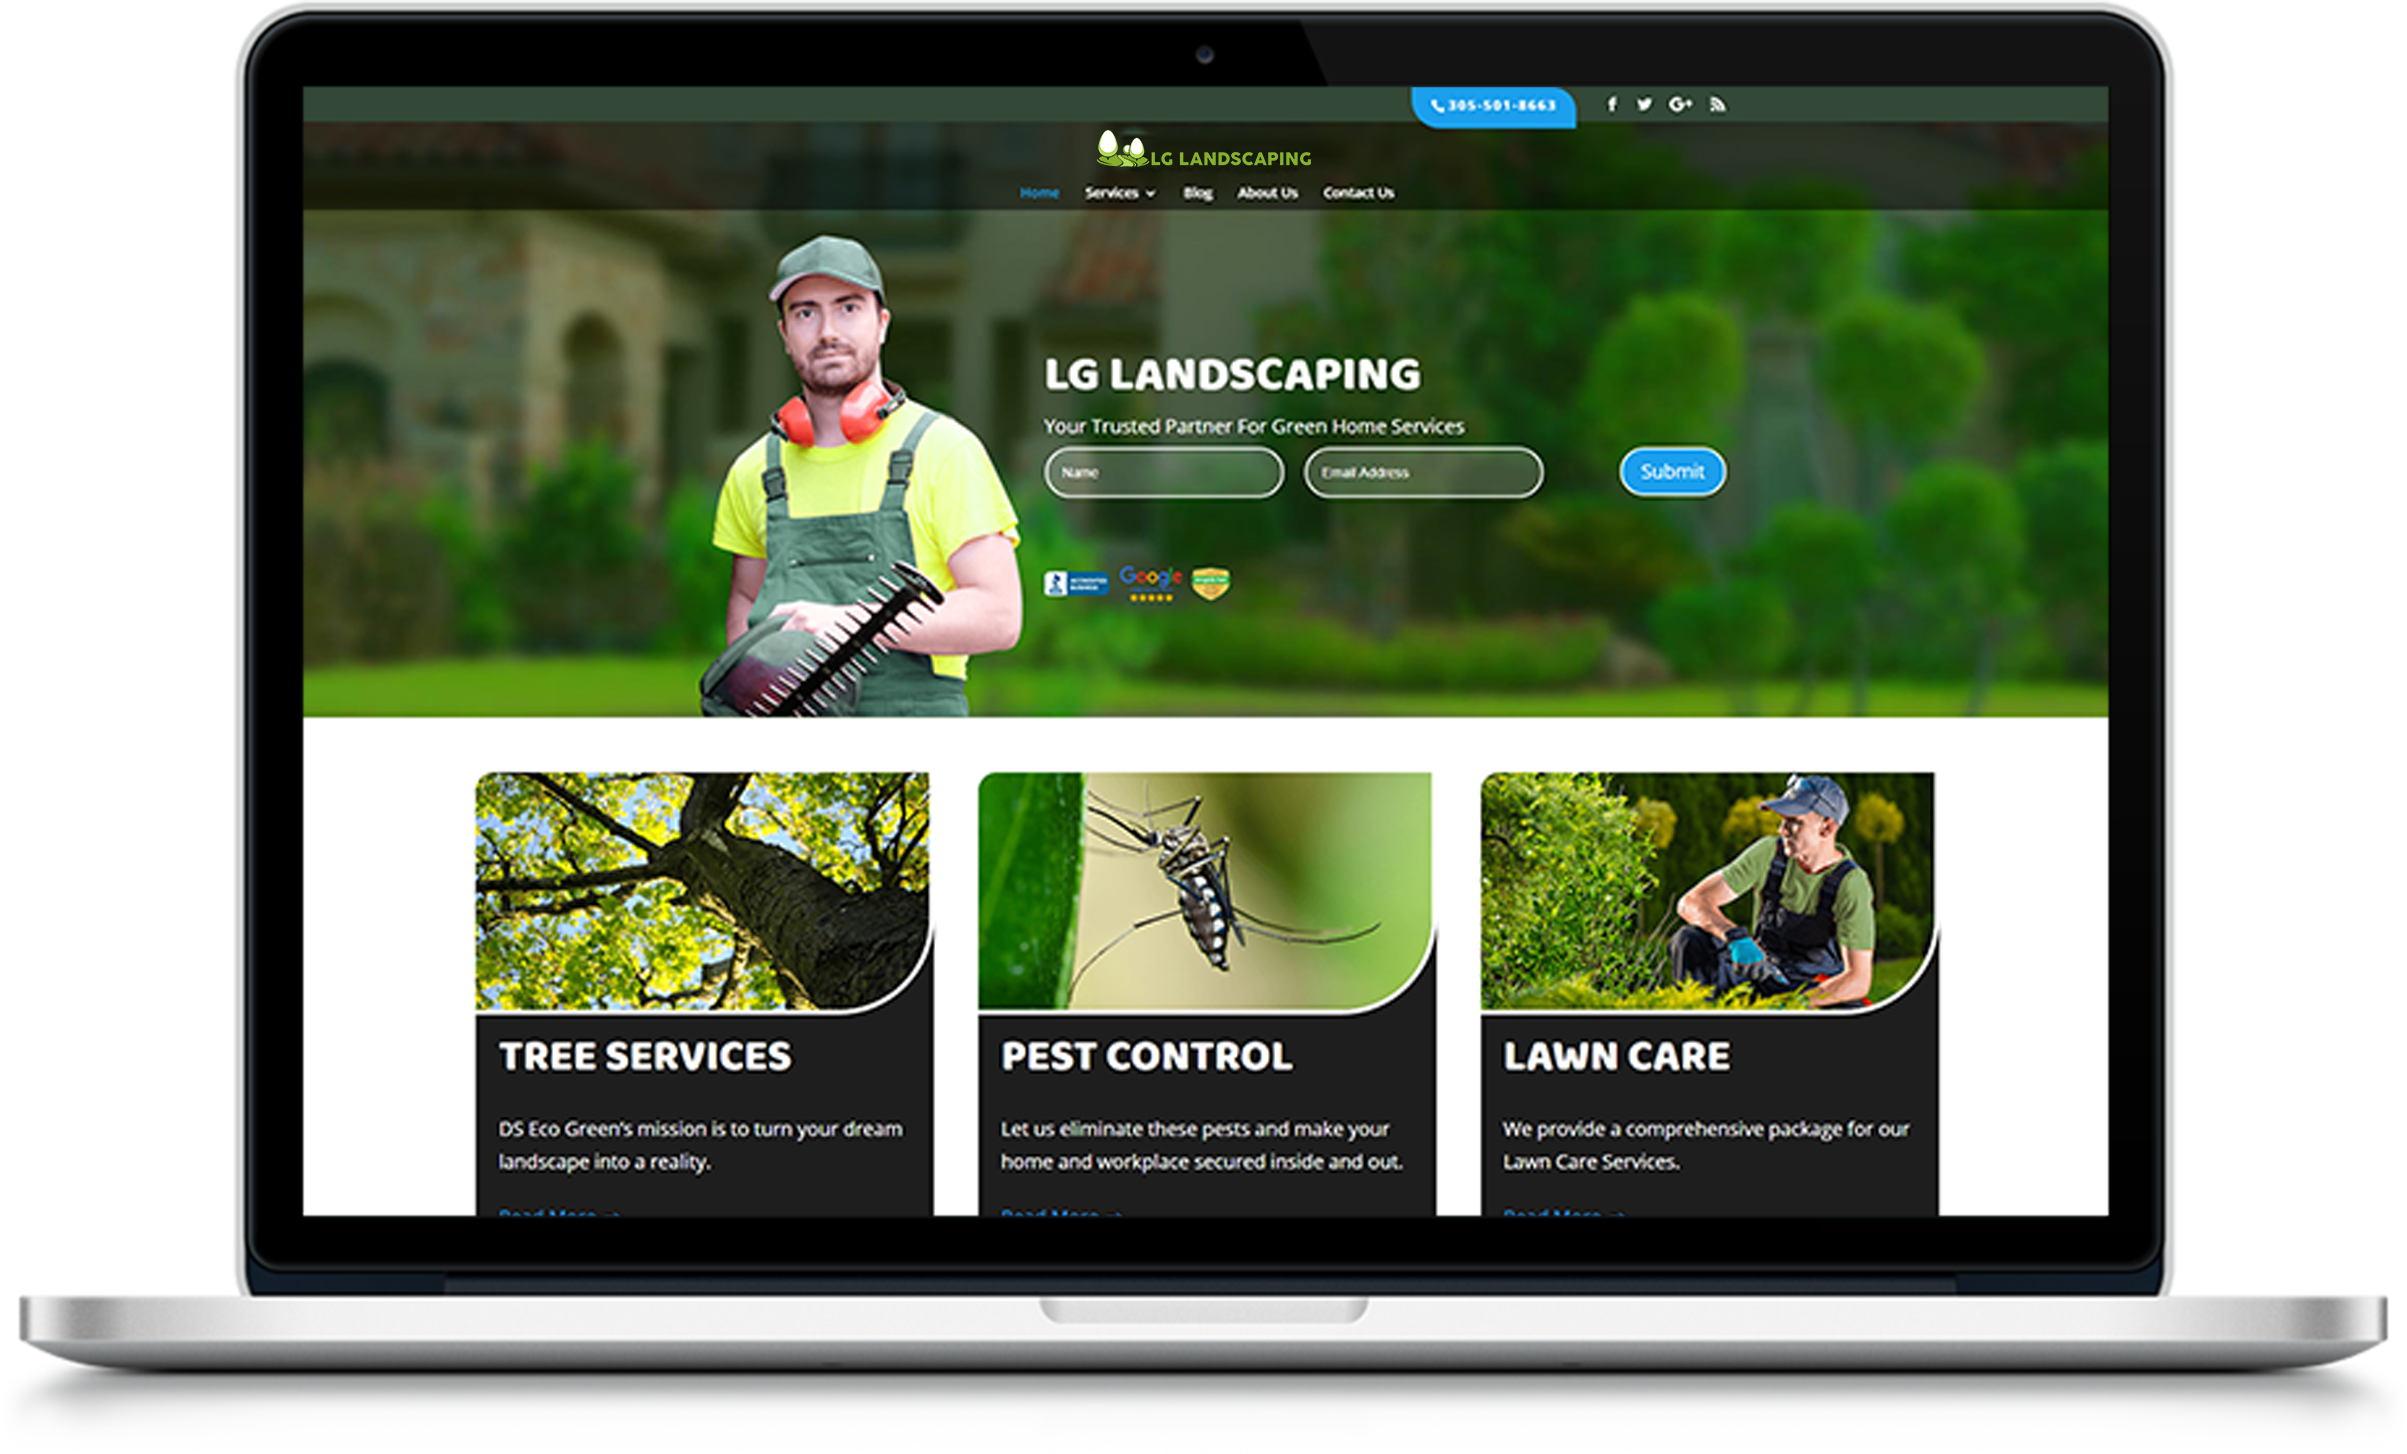 LG Landscaping